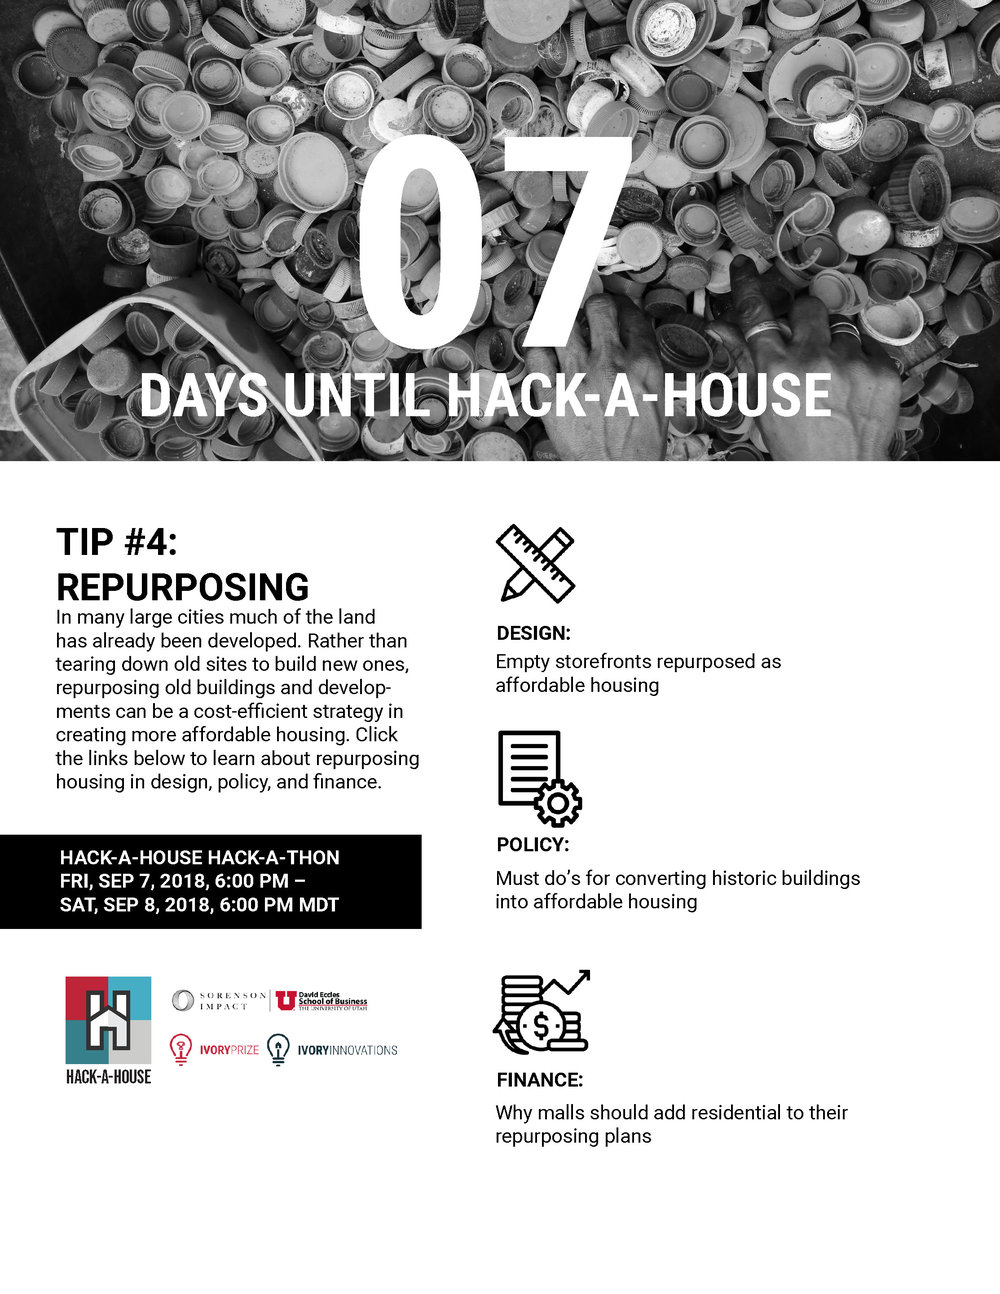 hack-a-house countdown_04.jpg